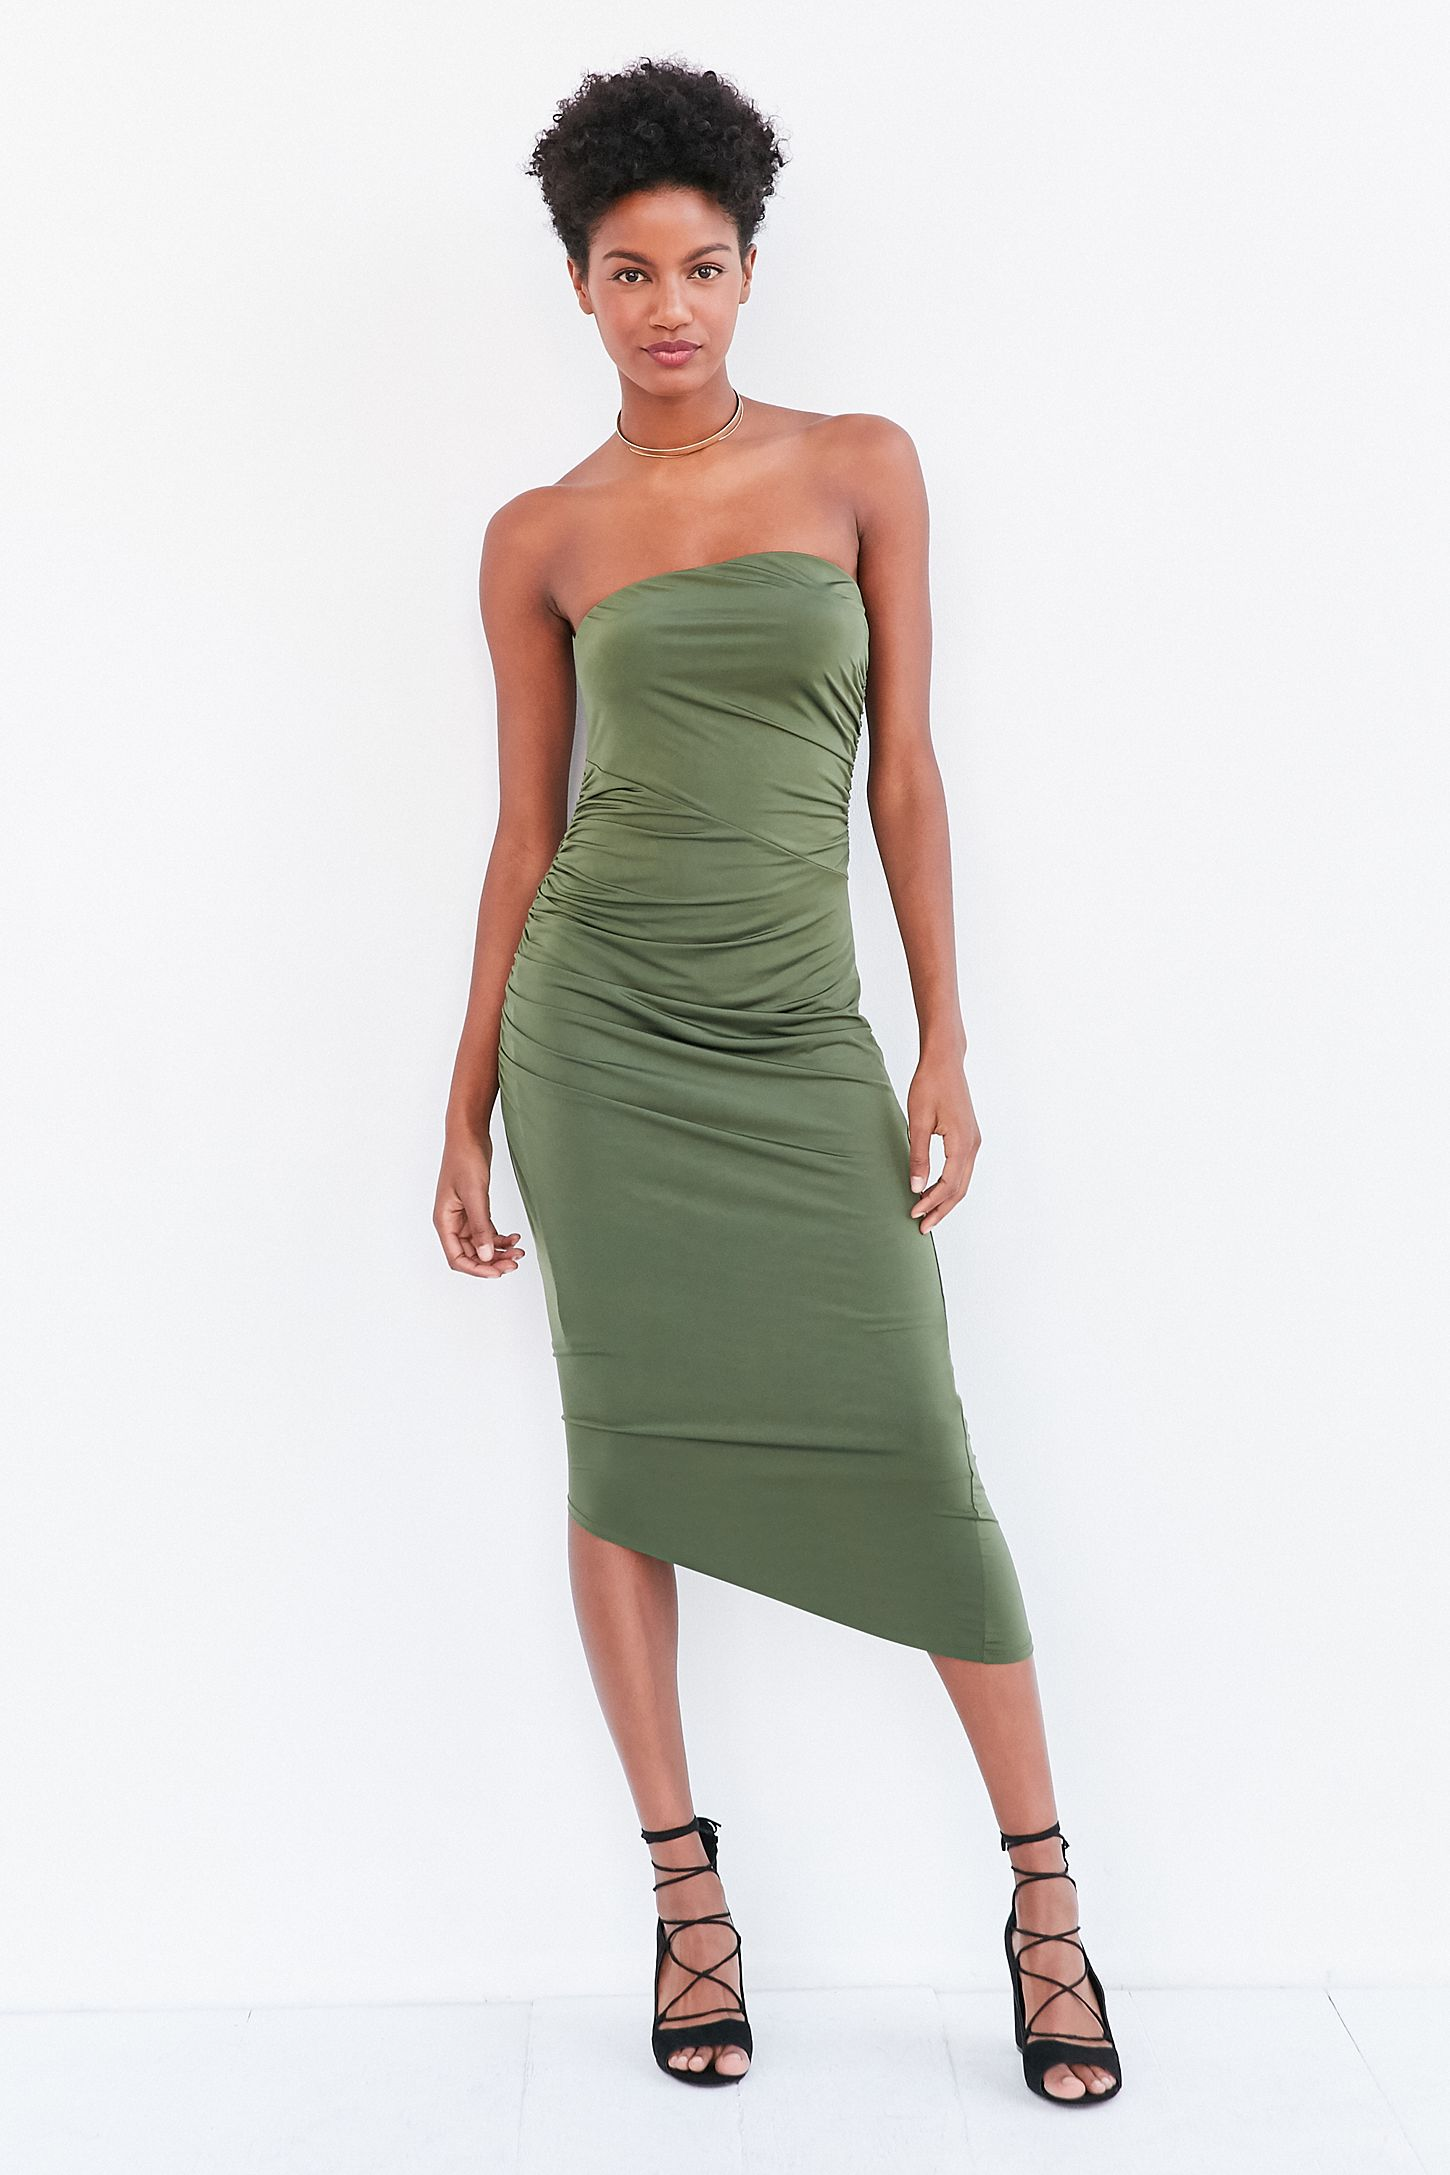 a37c61ba12f4 Silence + Noise Slinky Ruched Strapless Midi Dress | Urban ...